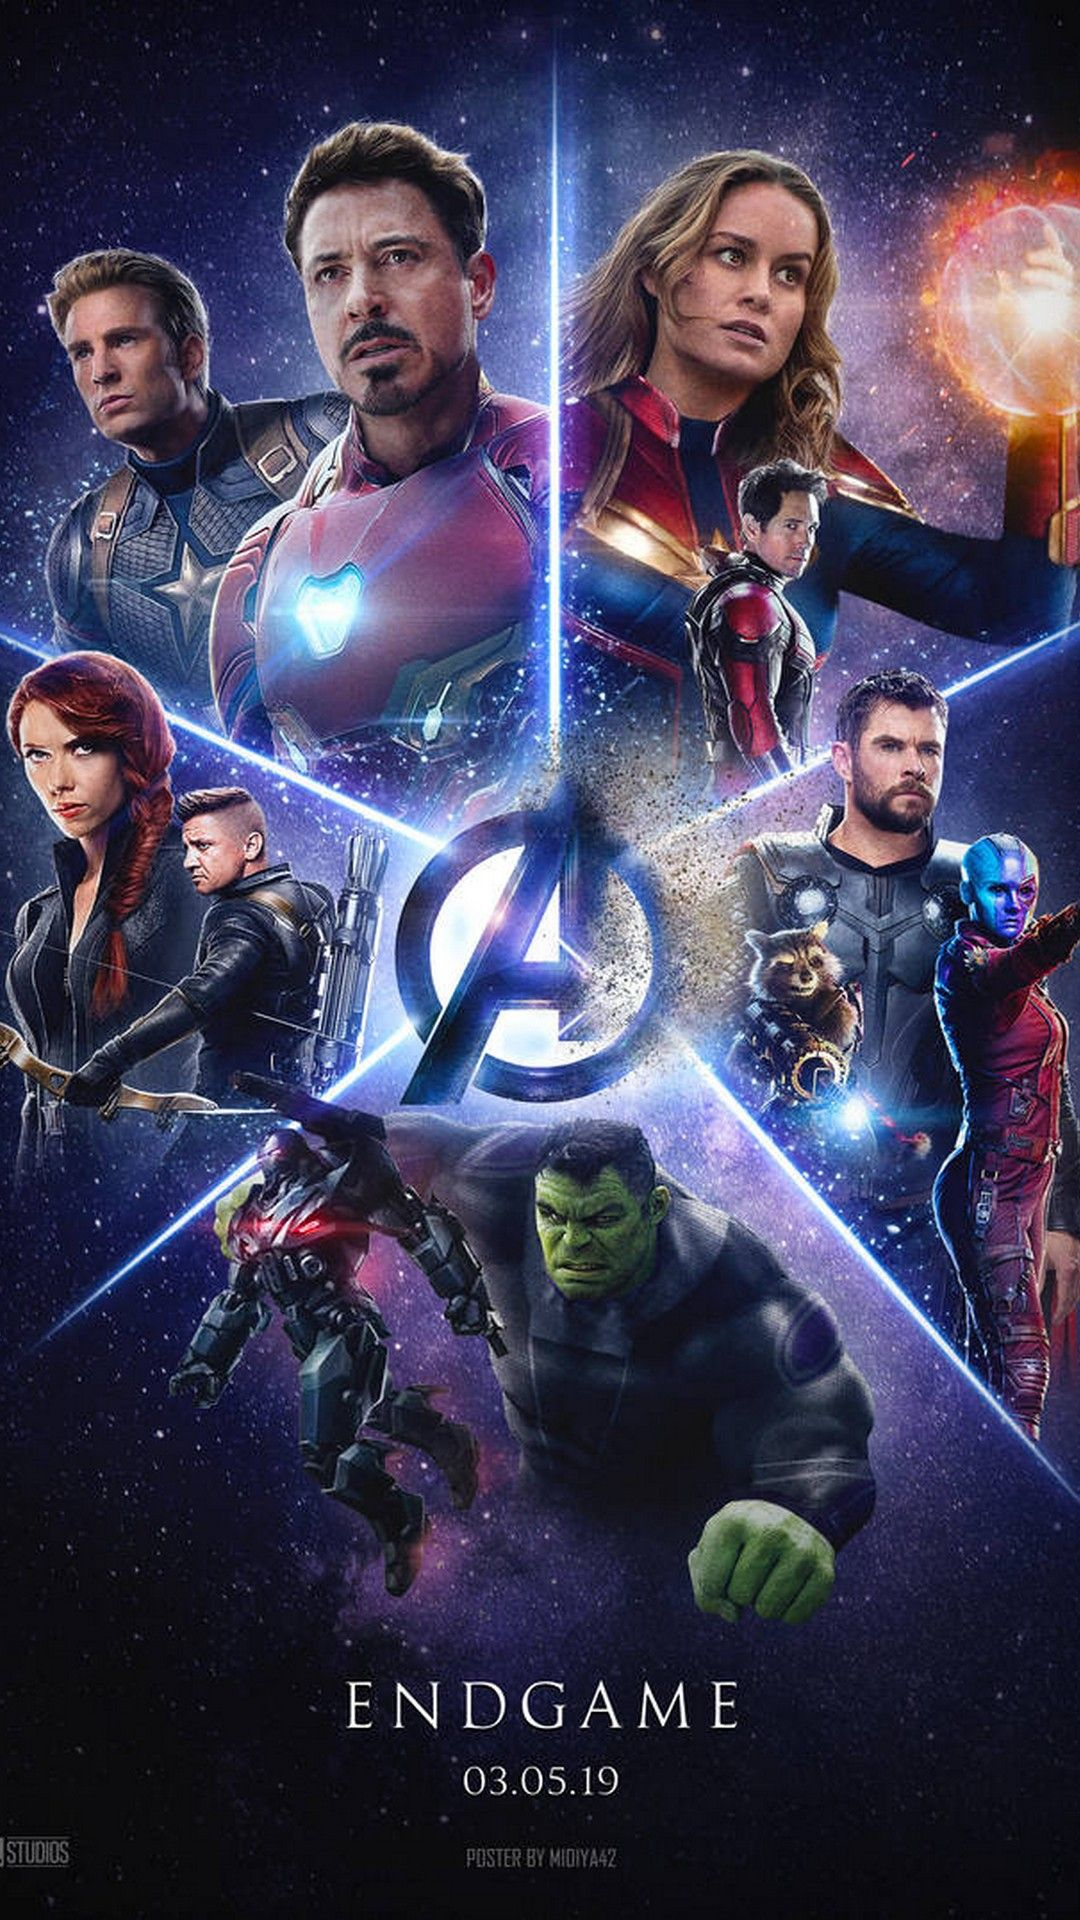 Avengers Endgame Poster With High Resolution 1080x1920 Pixel You Can Use This Poster Wallpaper For Your Desktop Co Avengers Pictures Best Avenger Marvel Films